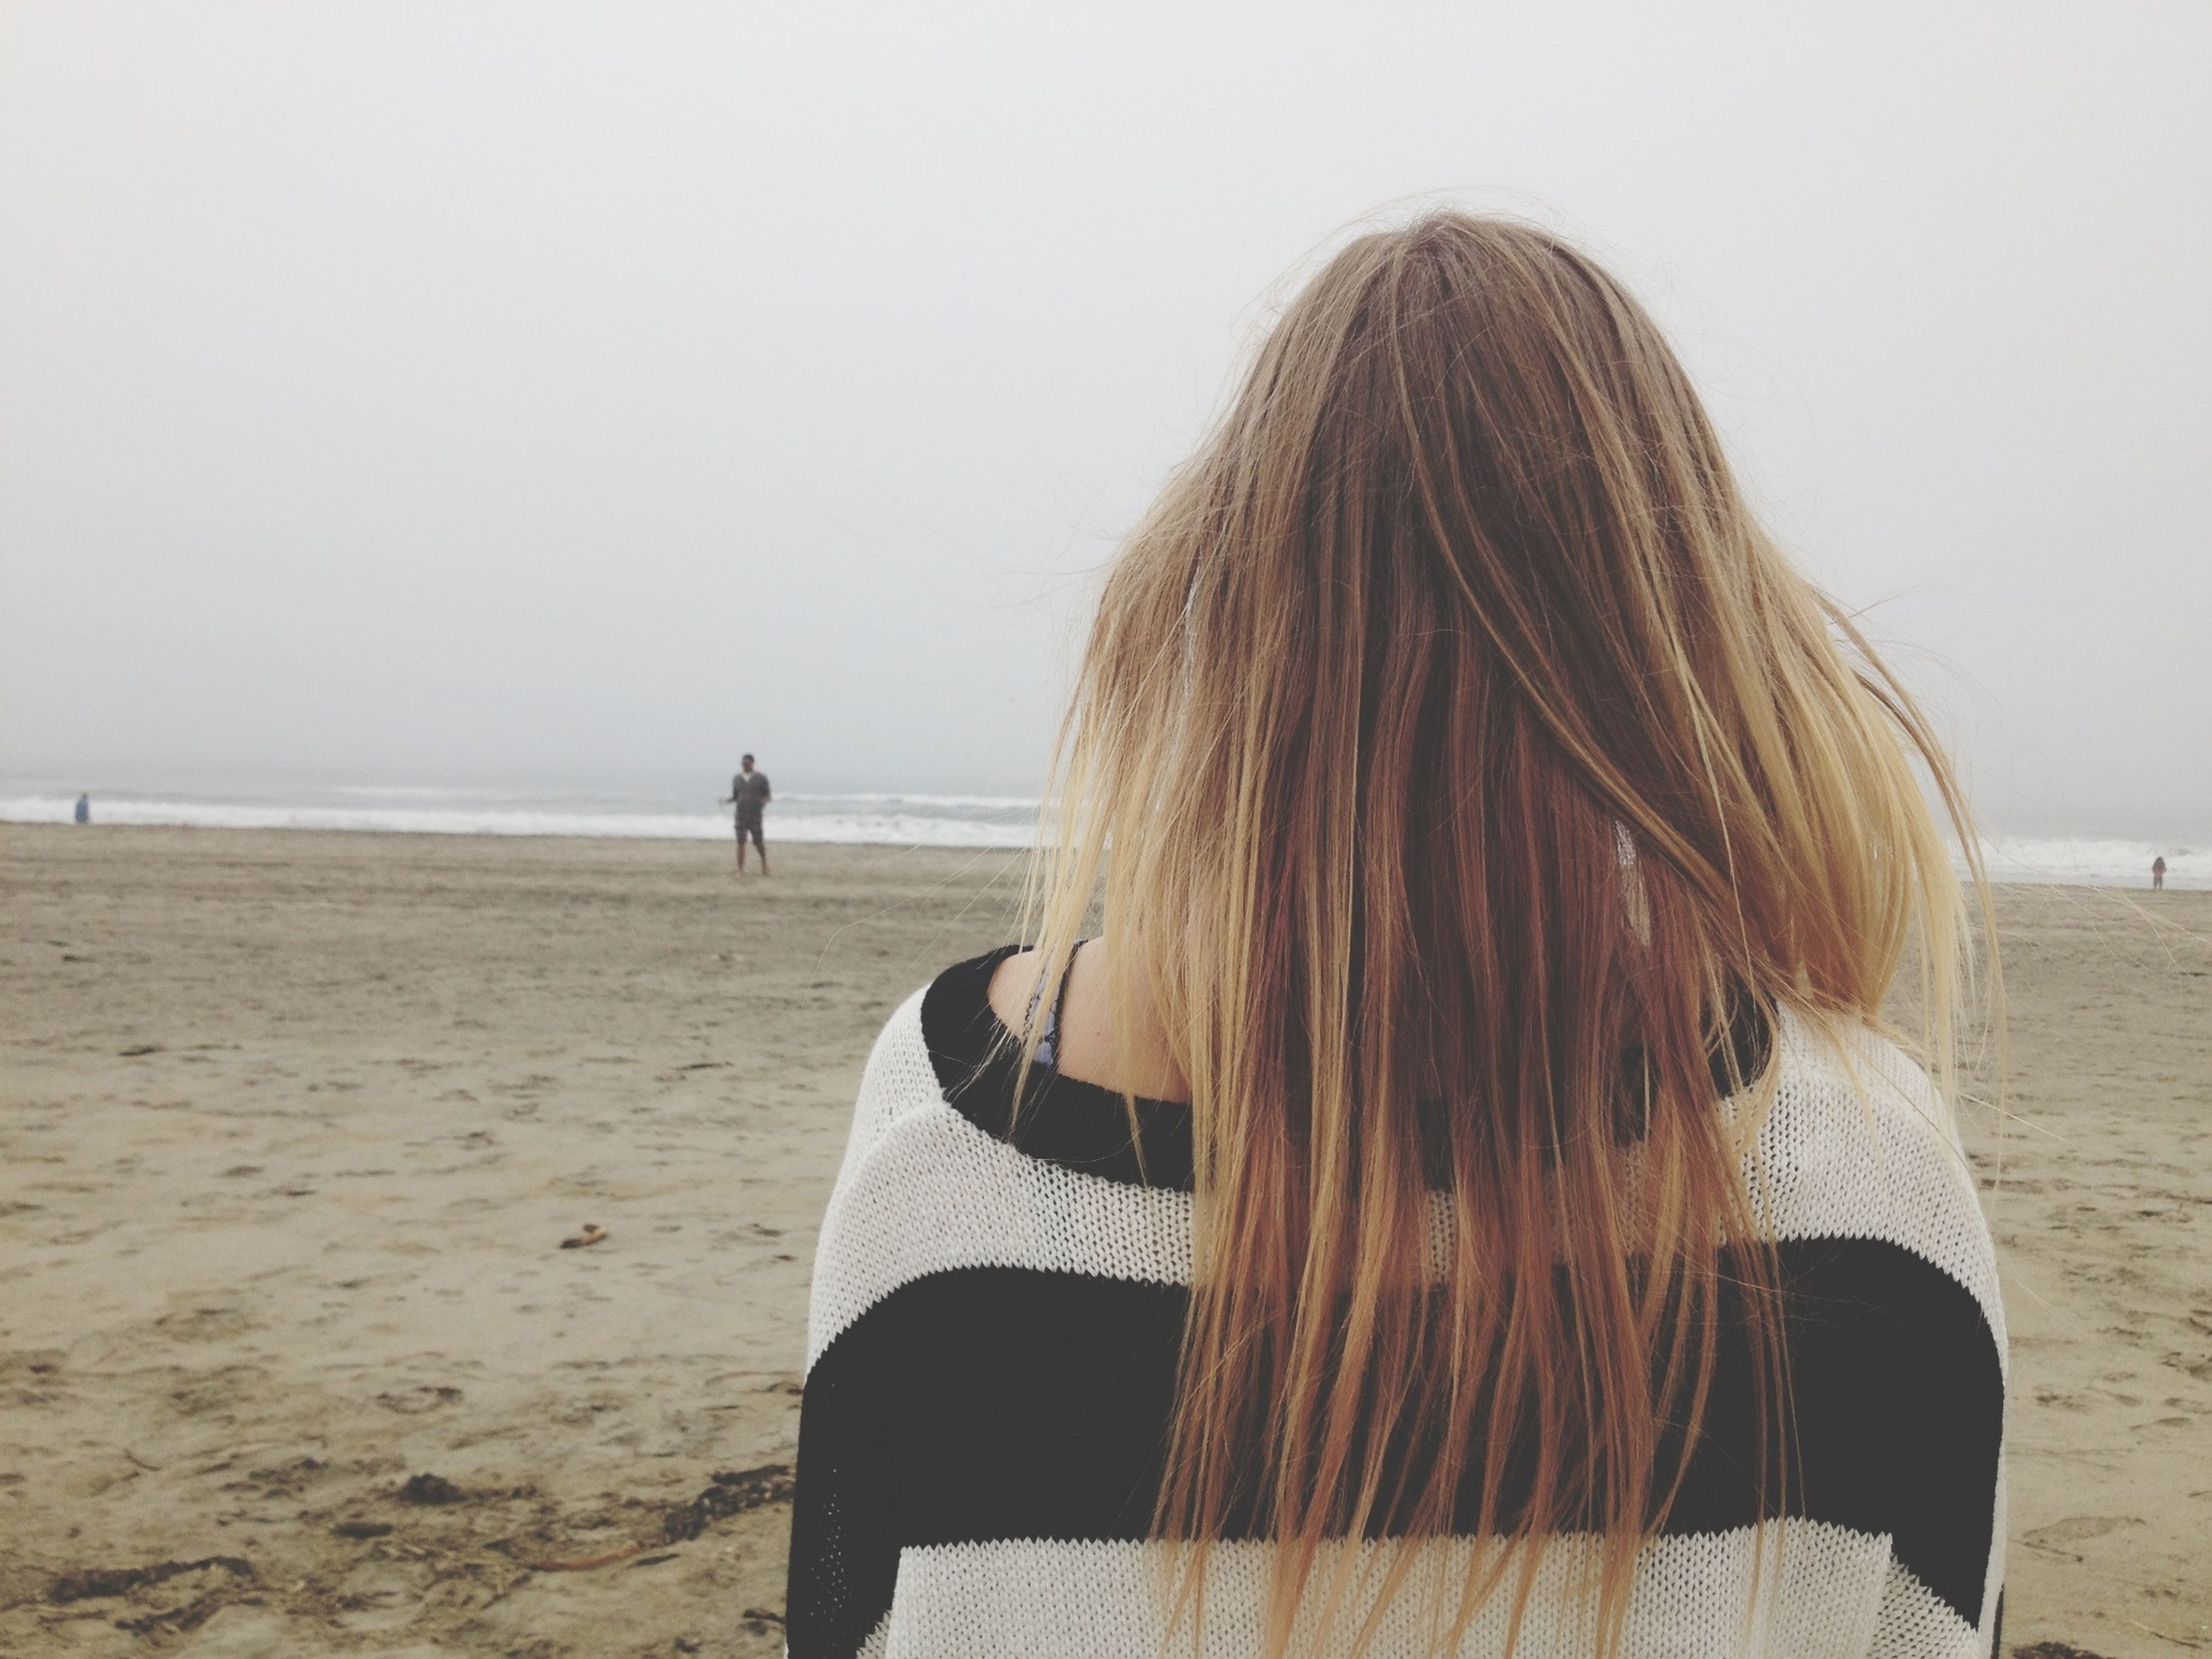 beach, sea, sand, horizon over water, rear view, shore, leisure activity, lifestyles, clear sky, person, water, long hair, standing, vacations, tranquility, tranquil scene, casual clothing, copy space